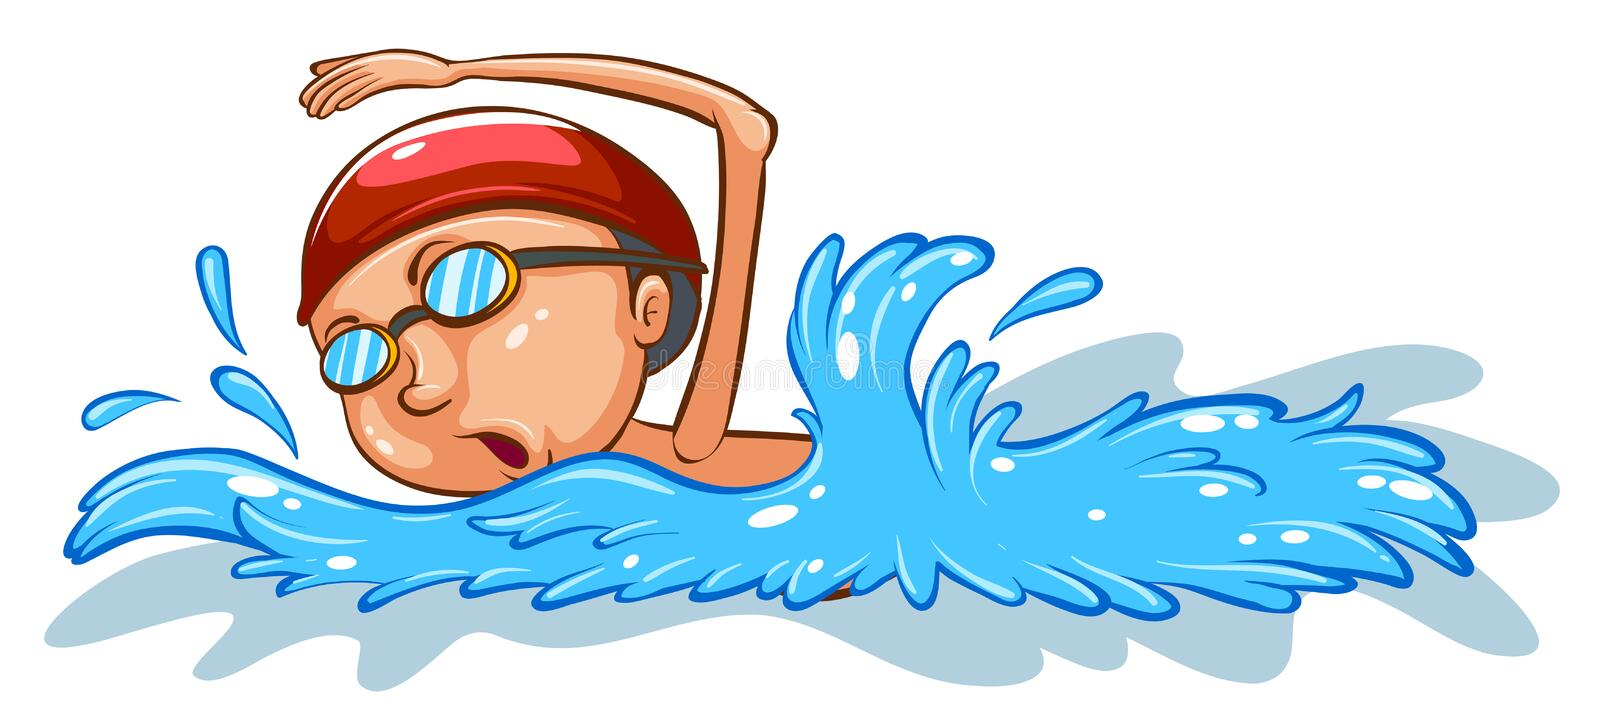 A simple coloured sketch of a boy swimming vector illustration